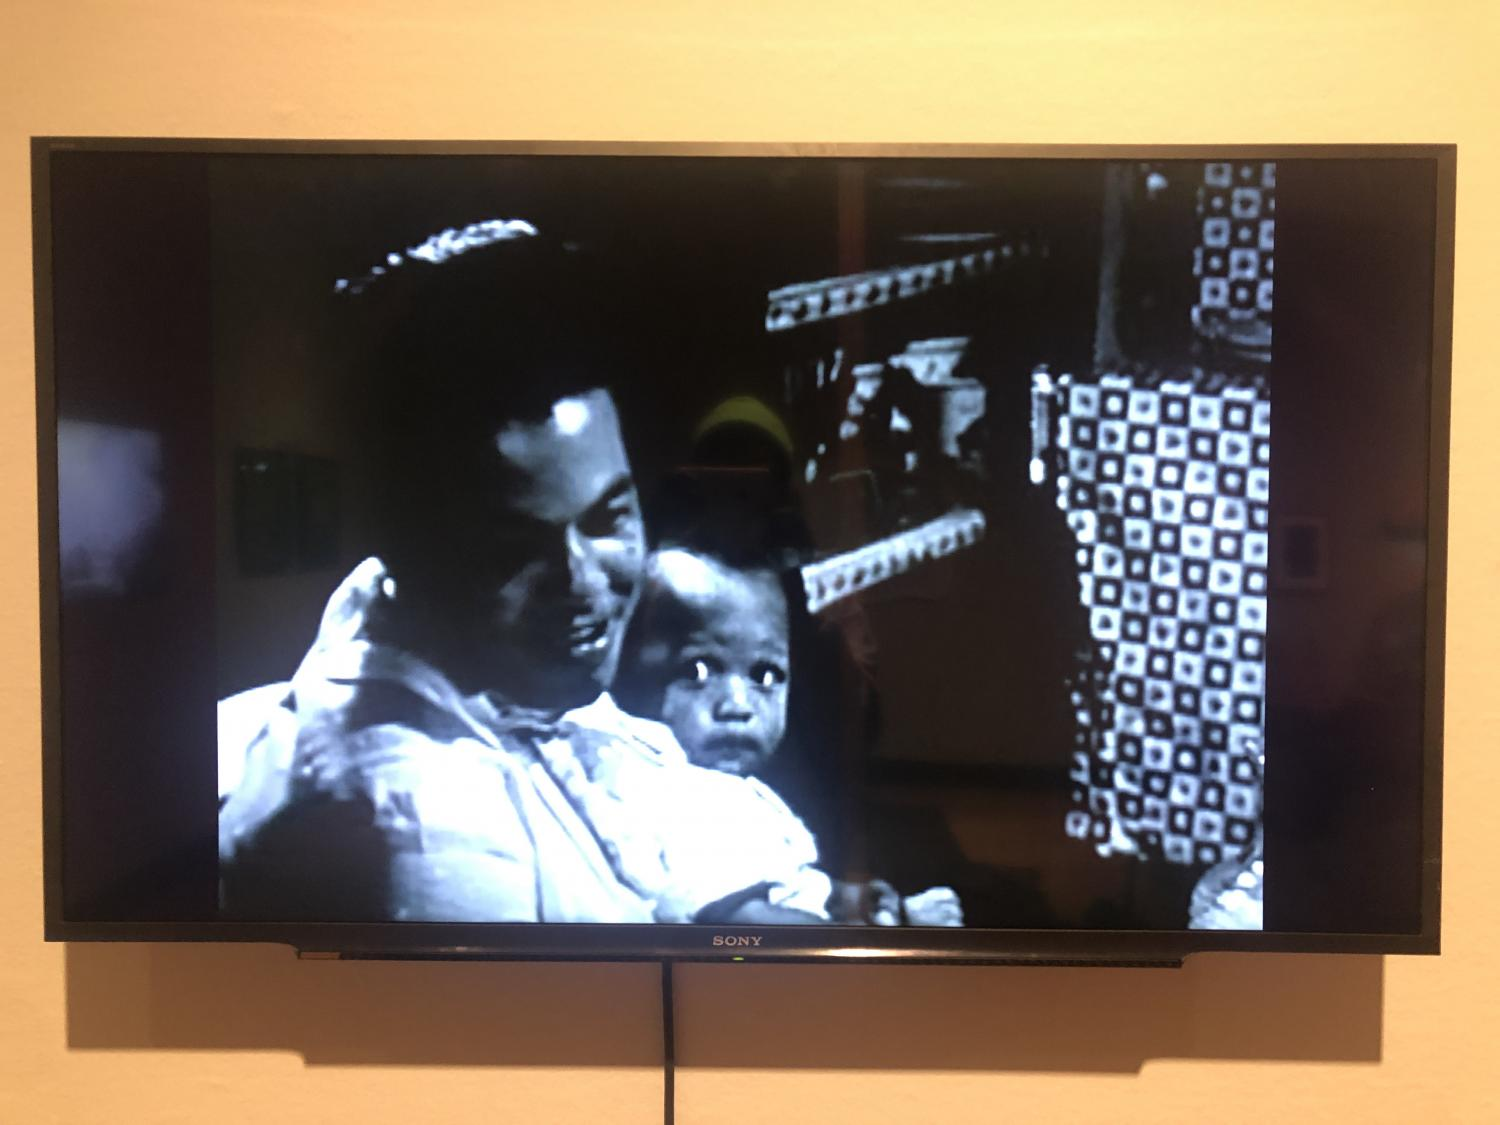 Television with a black and white image of a Black mother smiling. Her baby is seated on her hip, looking up at her. In the background is patterned cloth and a vintage stereo speaker. The snapshot appears to be from the mid to late 20th c. US.